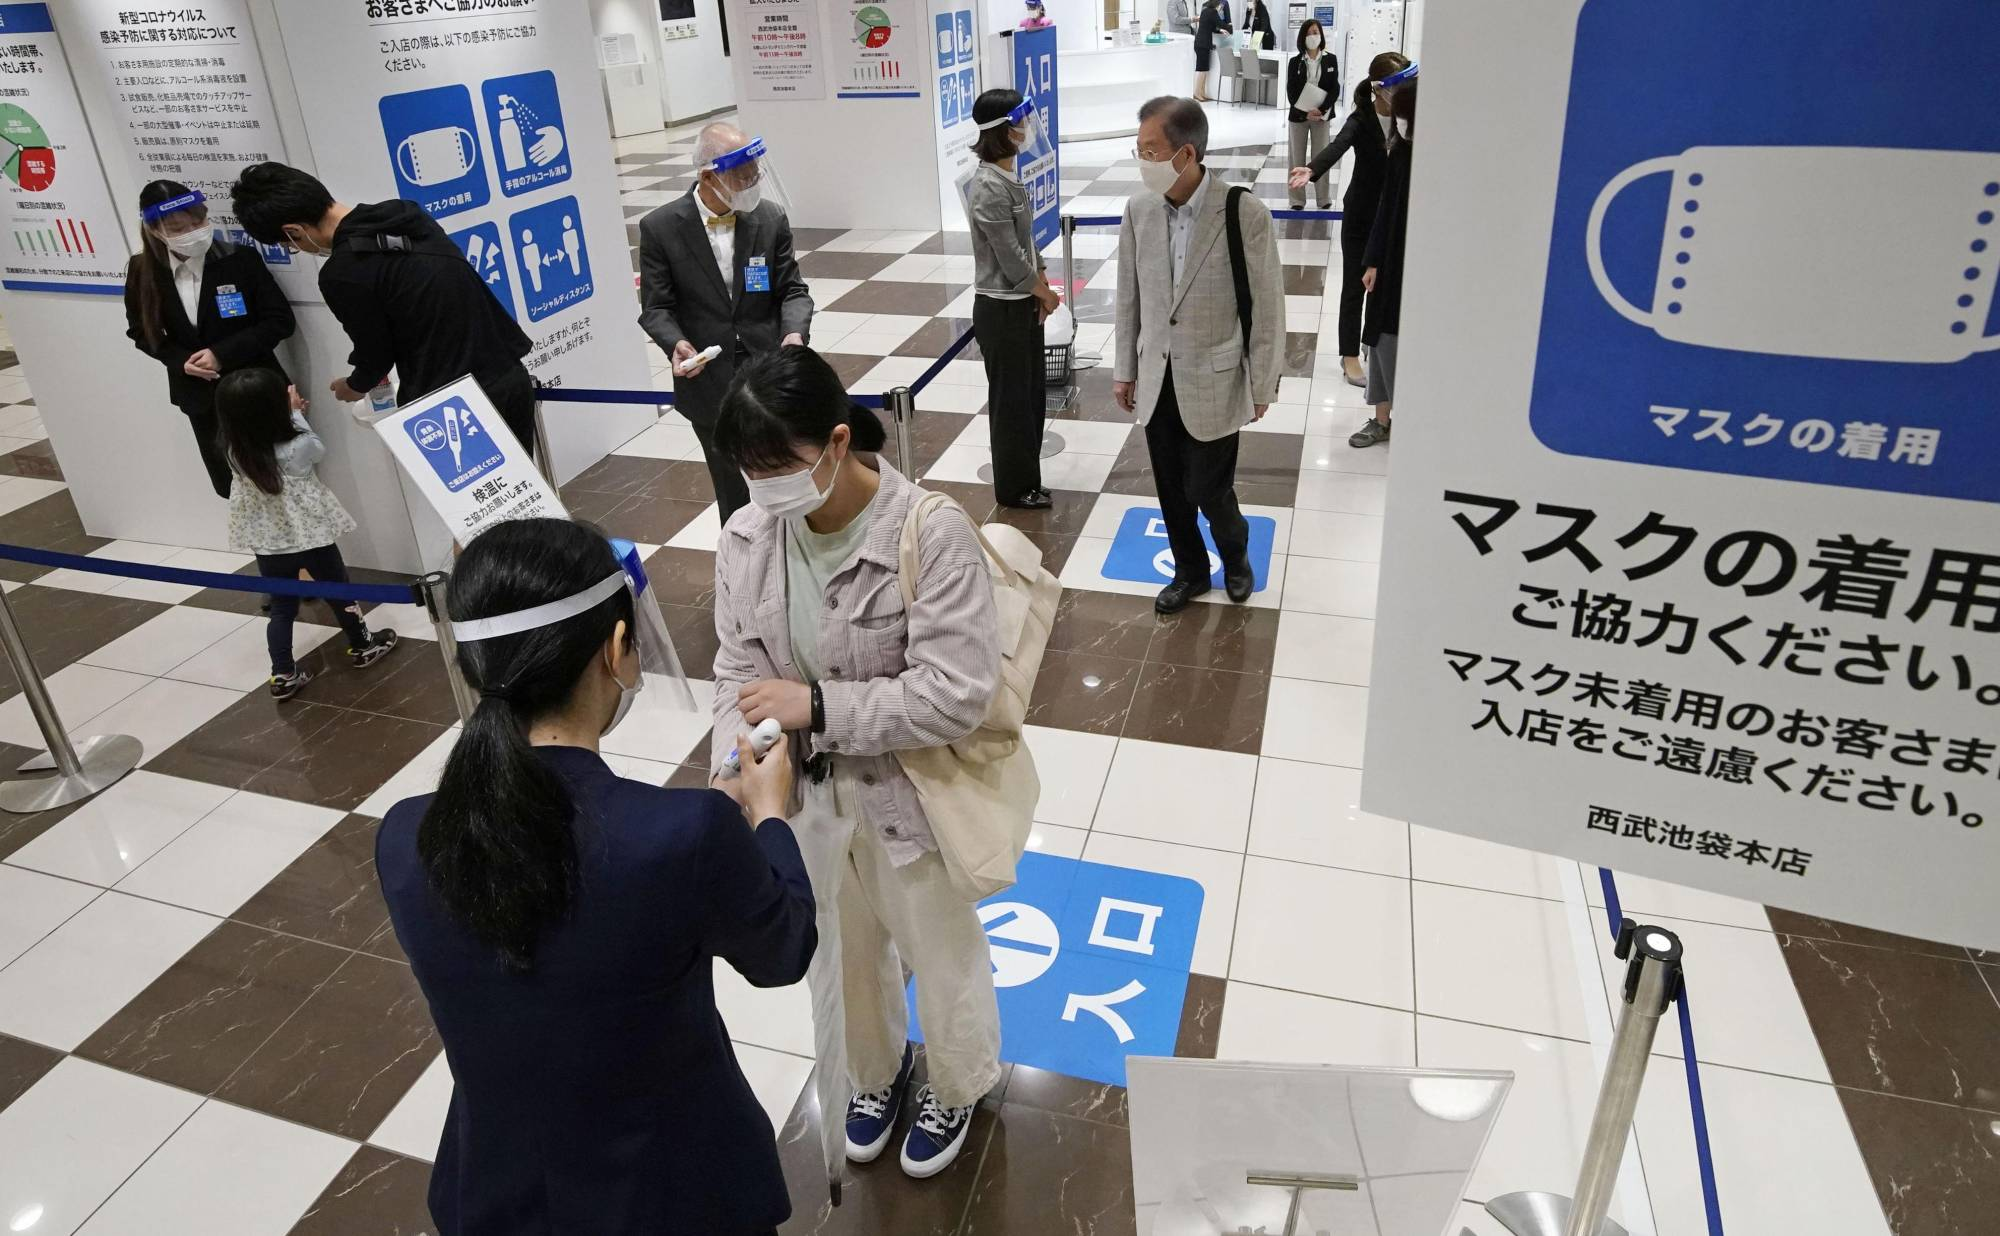 Customers have their temperatures checked at an entrance of the Seibu department store in Tokyo's Ikebukuro district on Saturday.  | KYODO